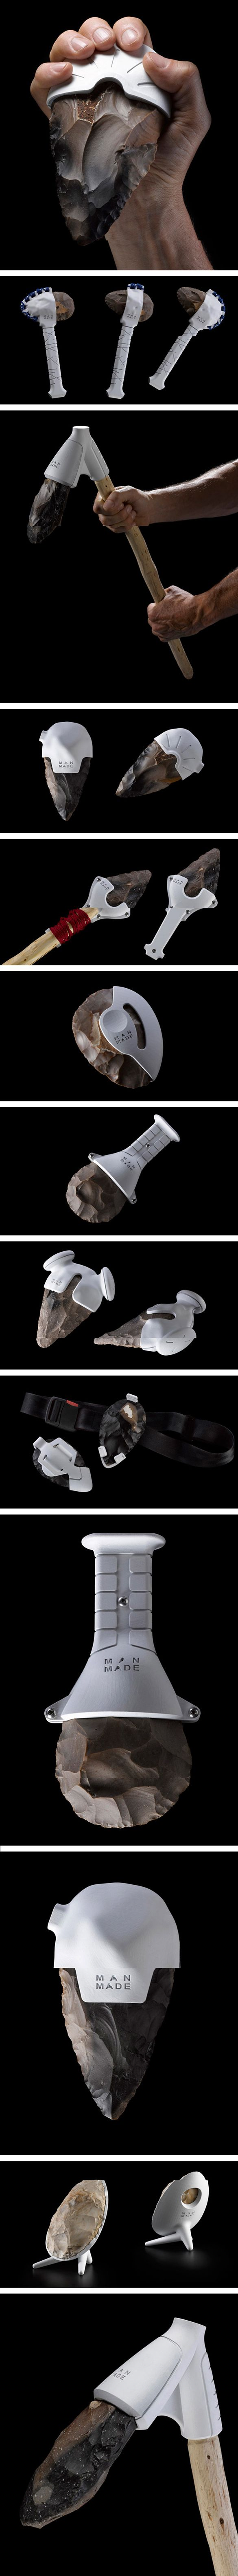 A project by designers Ami Drach and Dov Ganchrow (http://www.amidov.com/) entitled Man Made - creating 3D printed accessories for flint hand-axes.